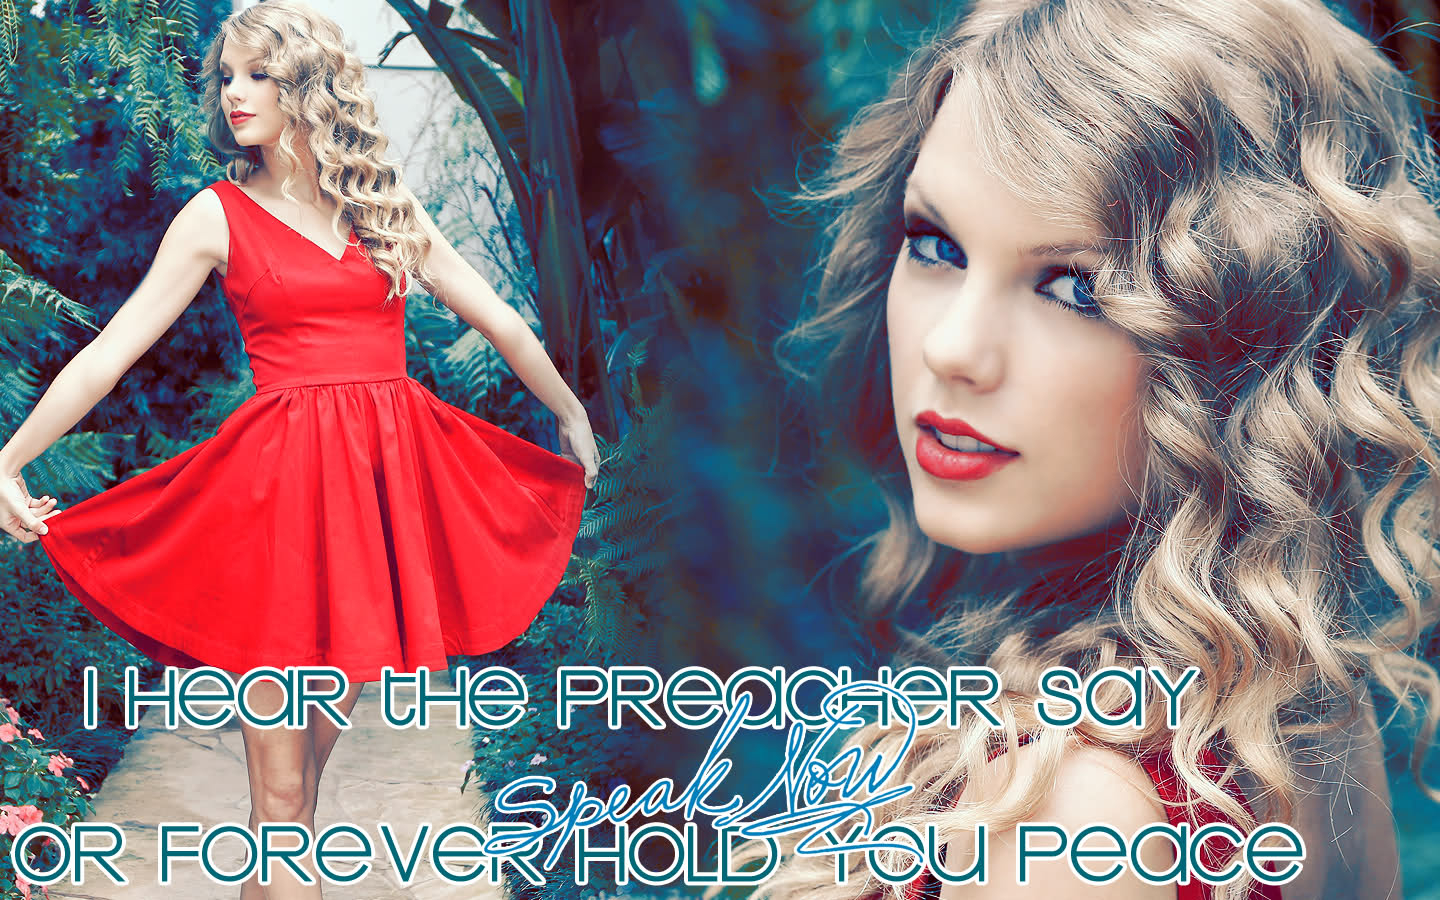 Free Download Taylor Swift Speak Now Lyrics Wallpaper Best Cool 1600x900 For Your Desktop Mobile Tablet Explore 66 Taylor Swift Speak Now Wallpaper Taylor Swift Speak Now Wallpaper Taylor